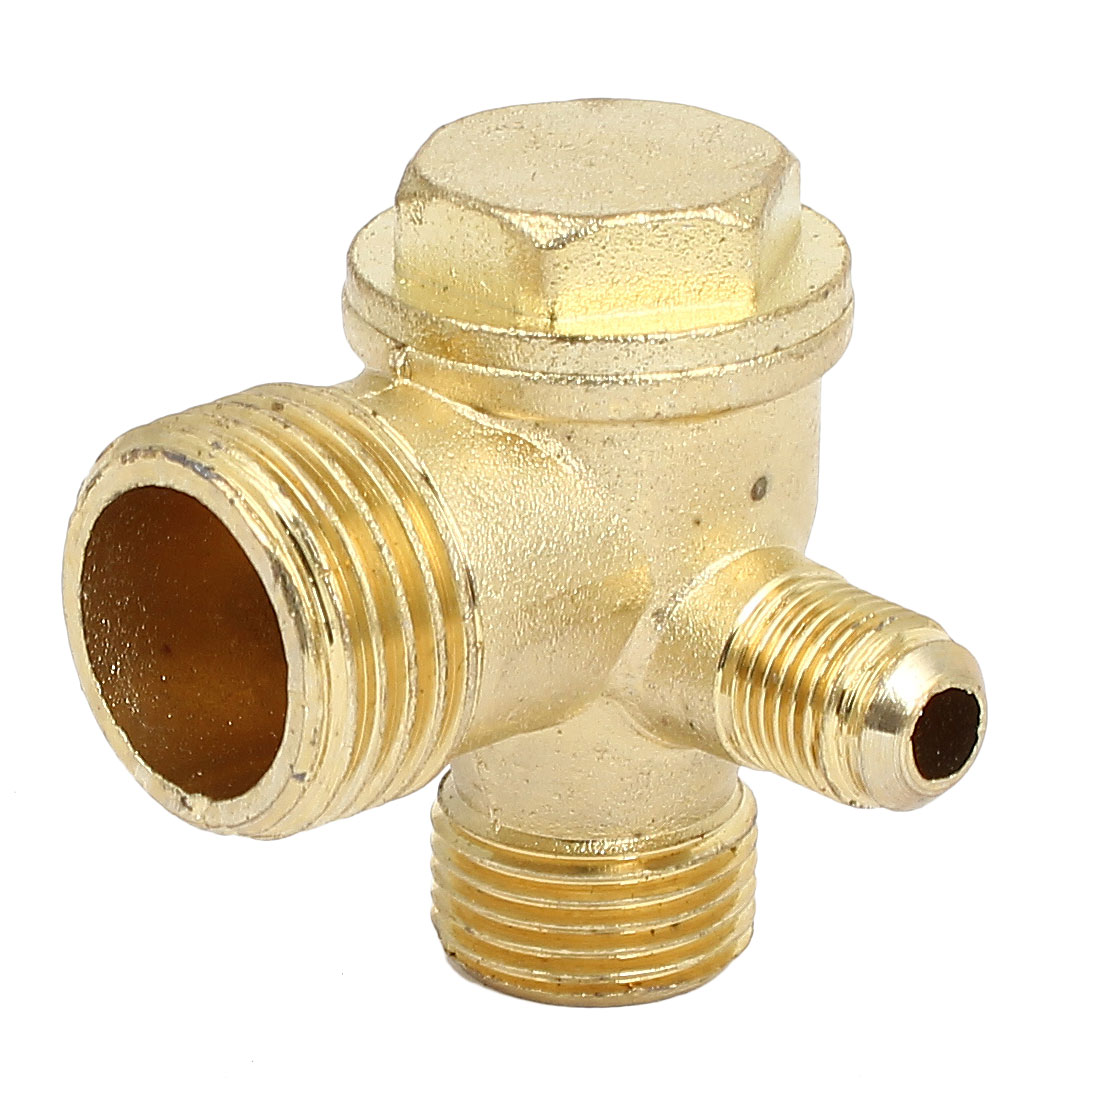 3/8BSP x 1/2BSP x 1/4BSP Male Thread Metal Air Compressor Check Valve Gold Tone